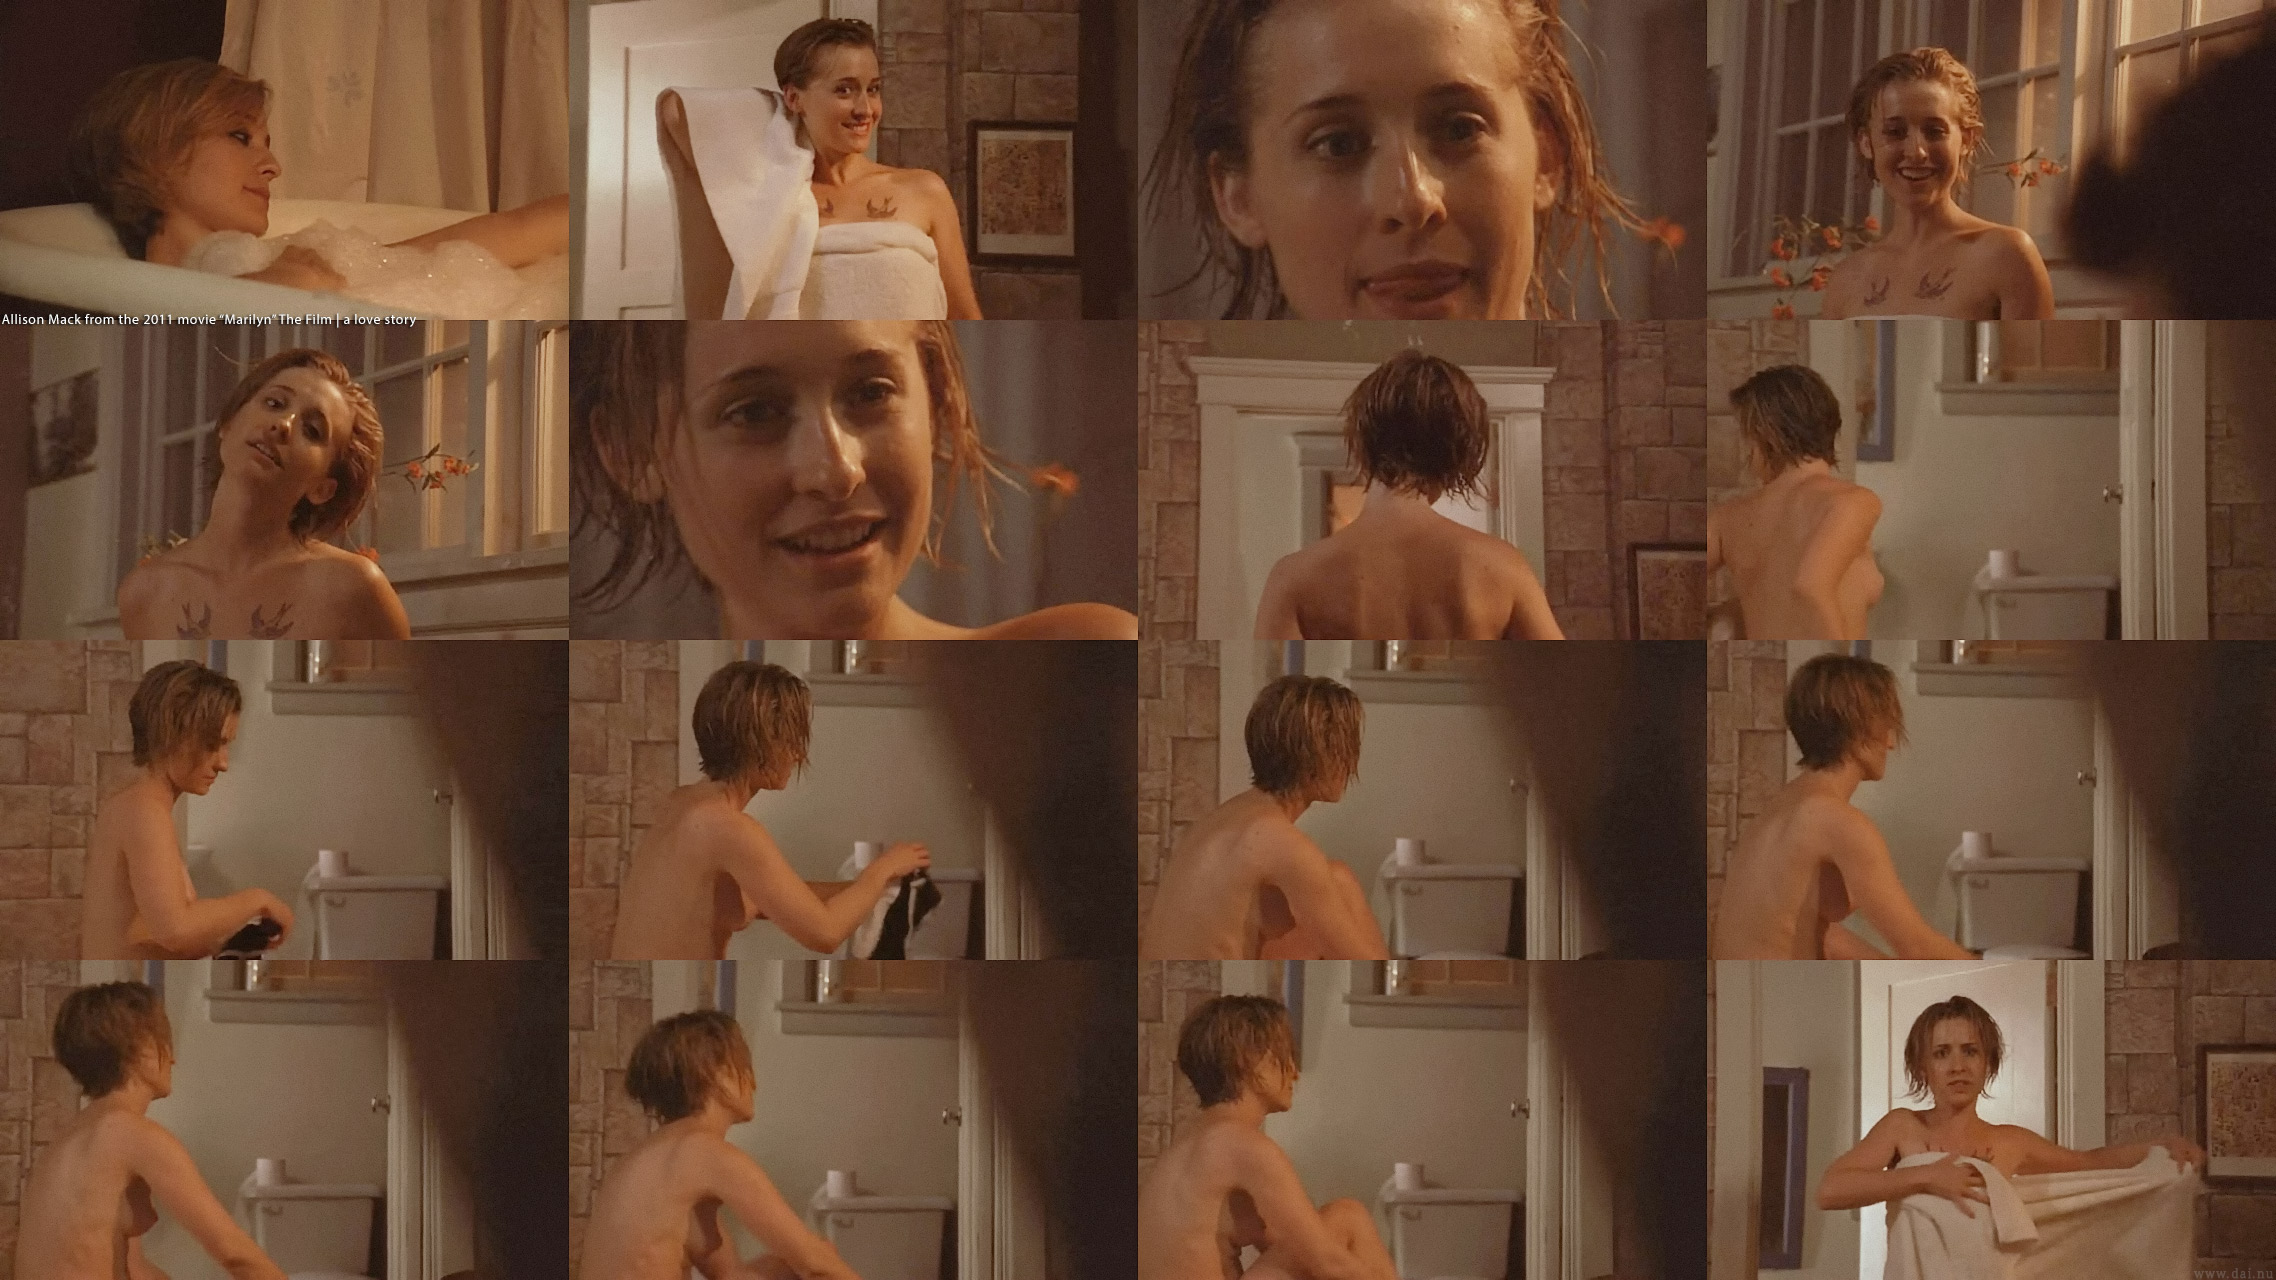 nude Allison mack